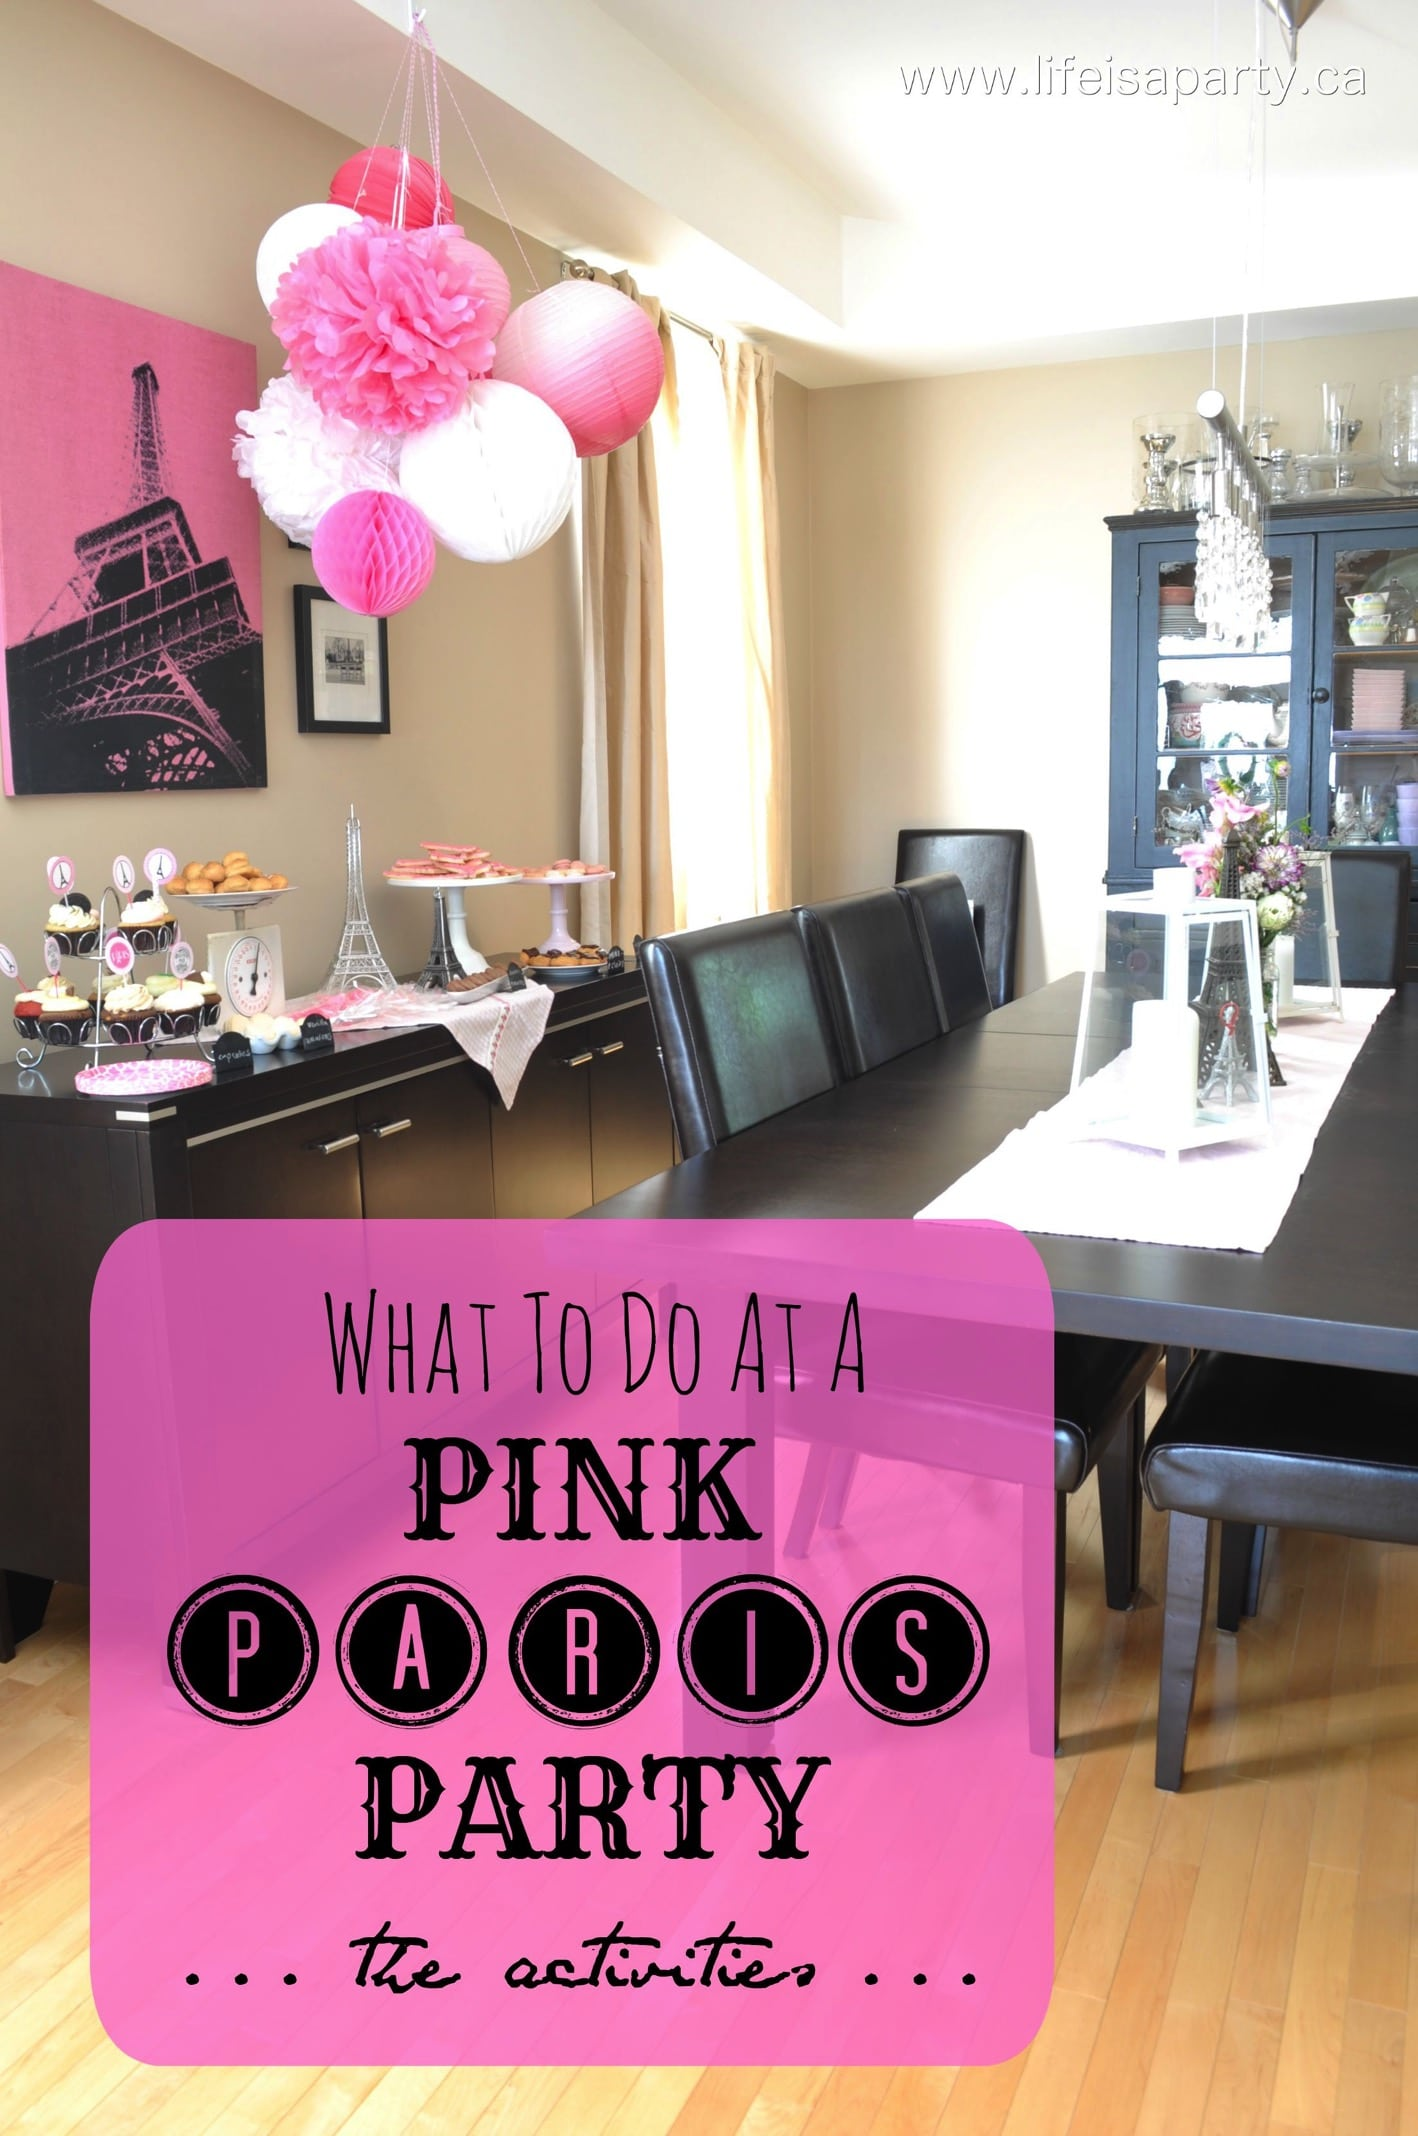 Pink Paris Birthday Party Activities And Decorations